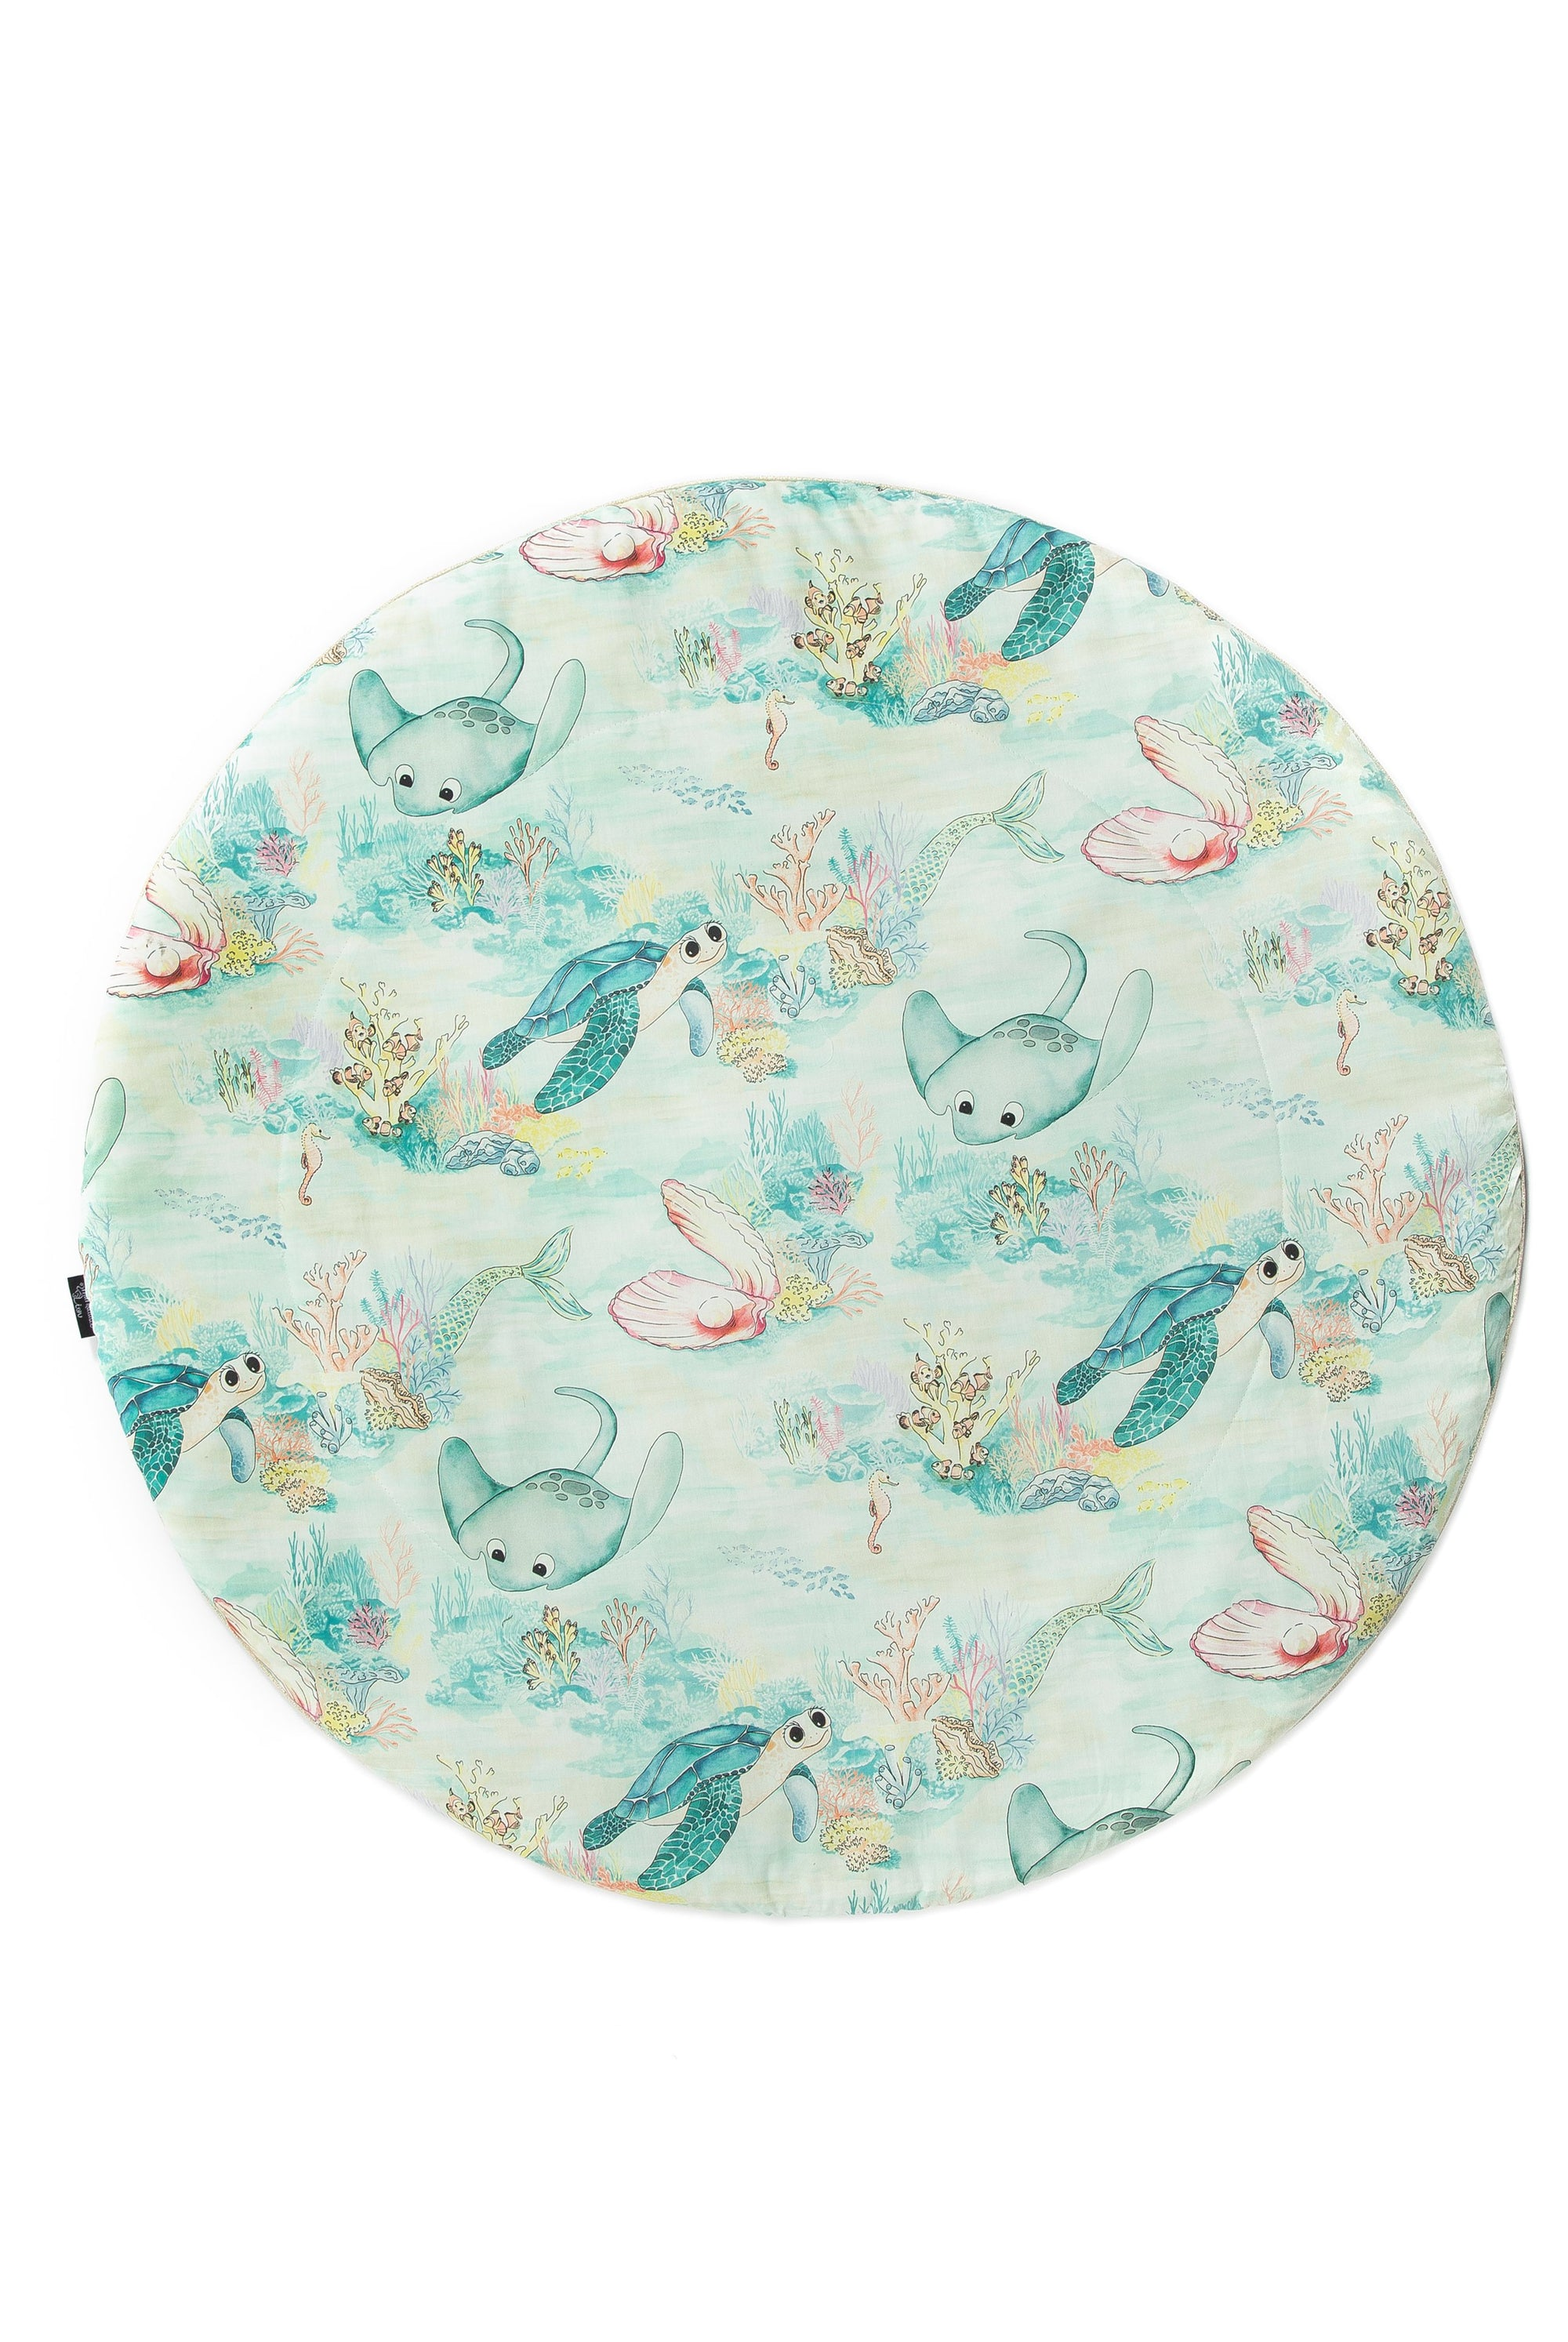 Lady Elliot Island Play Mat (Cover Only)